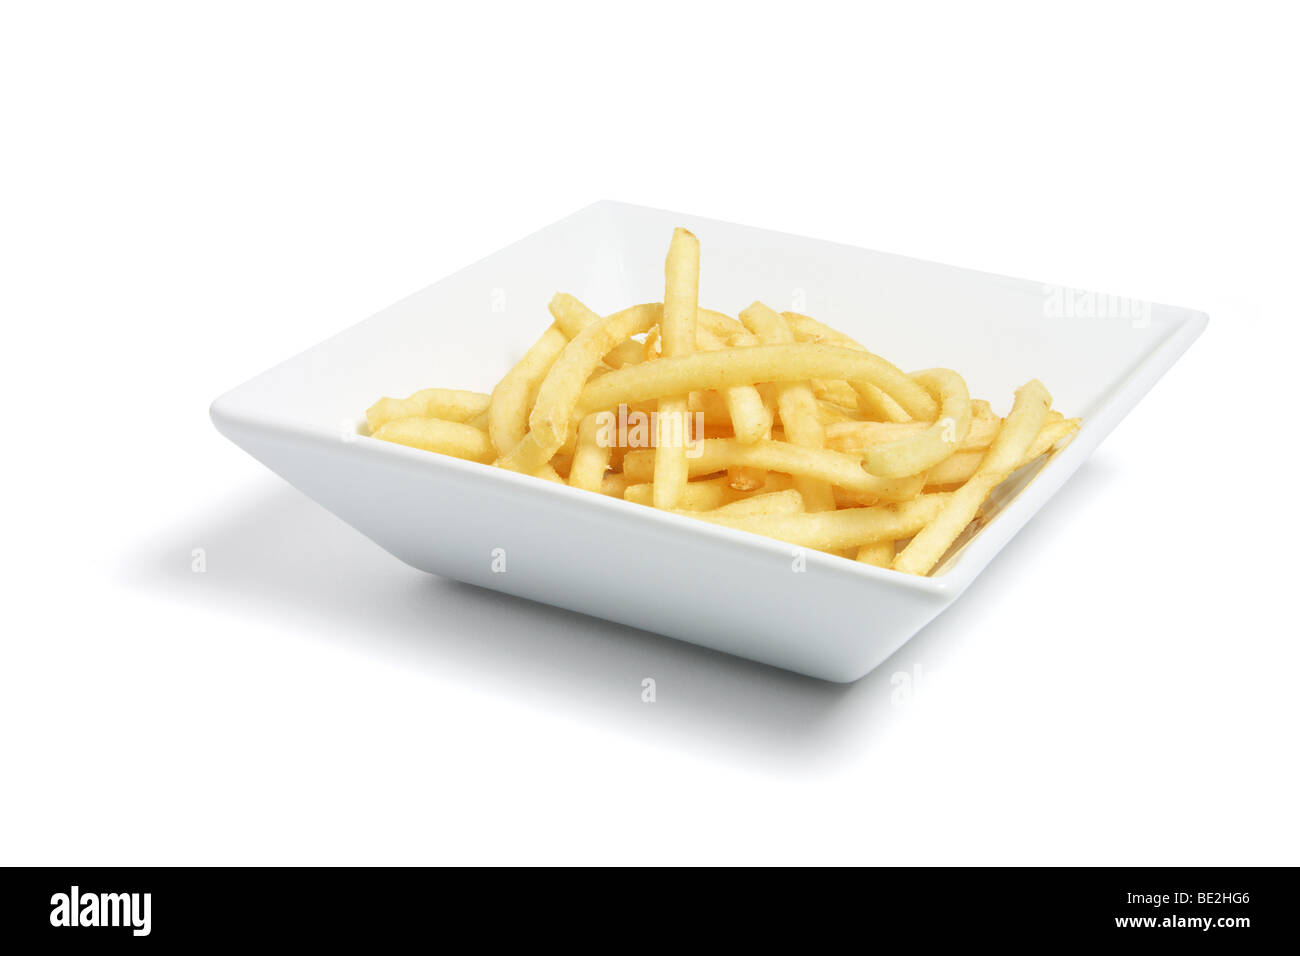 Plate of French Fries on White Background - Stock Image